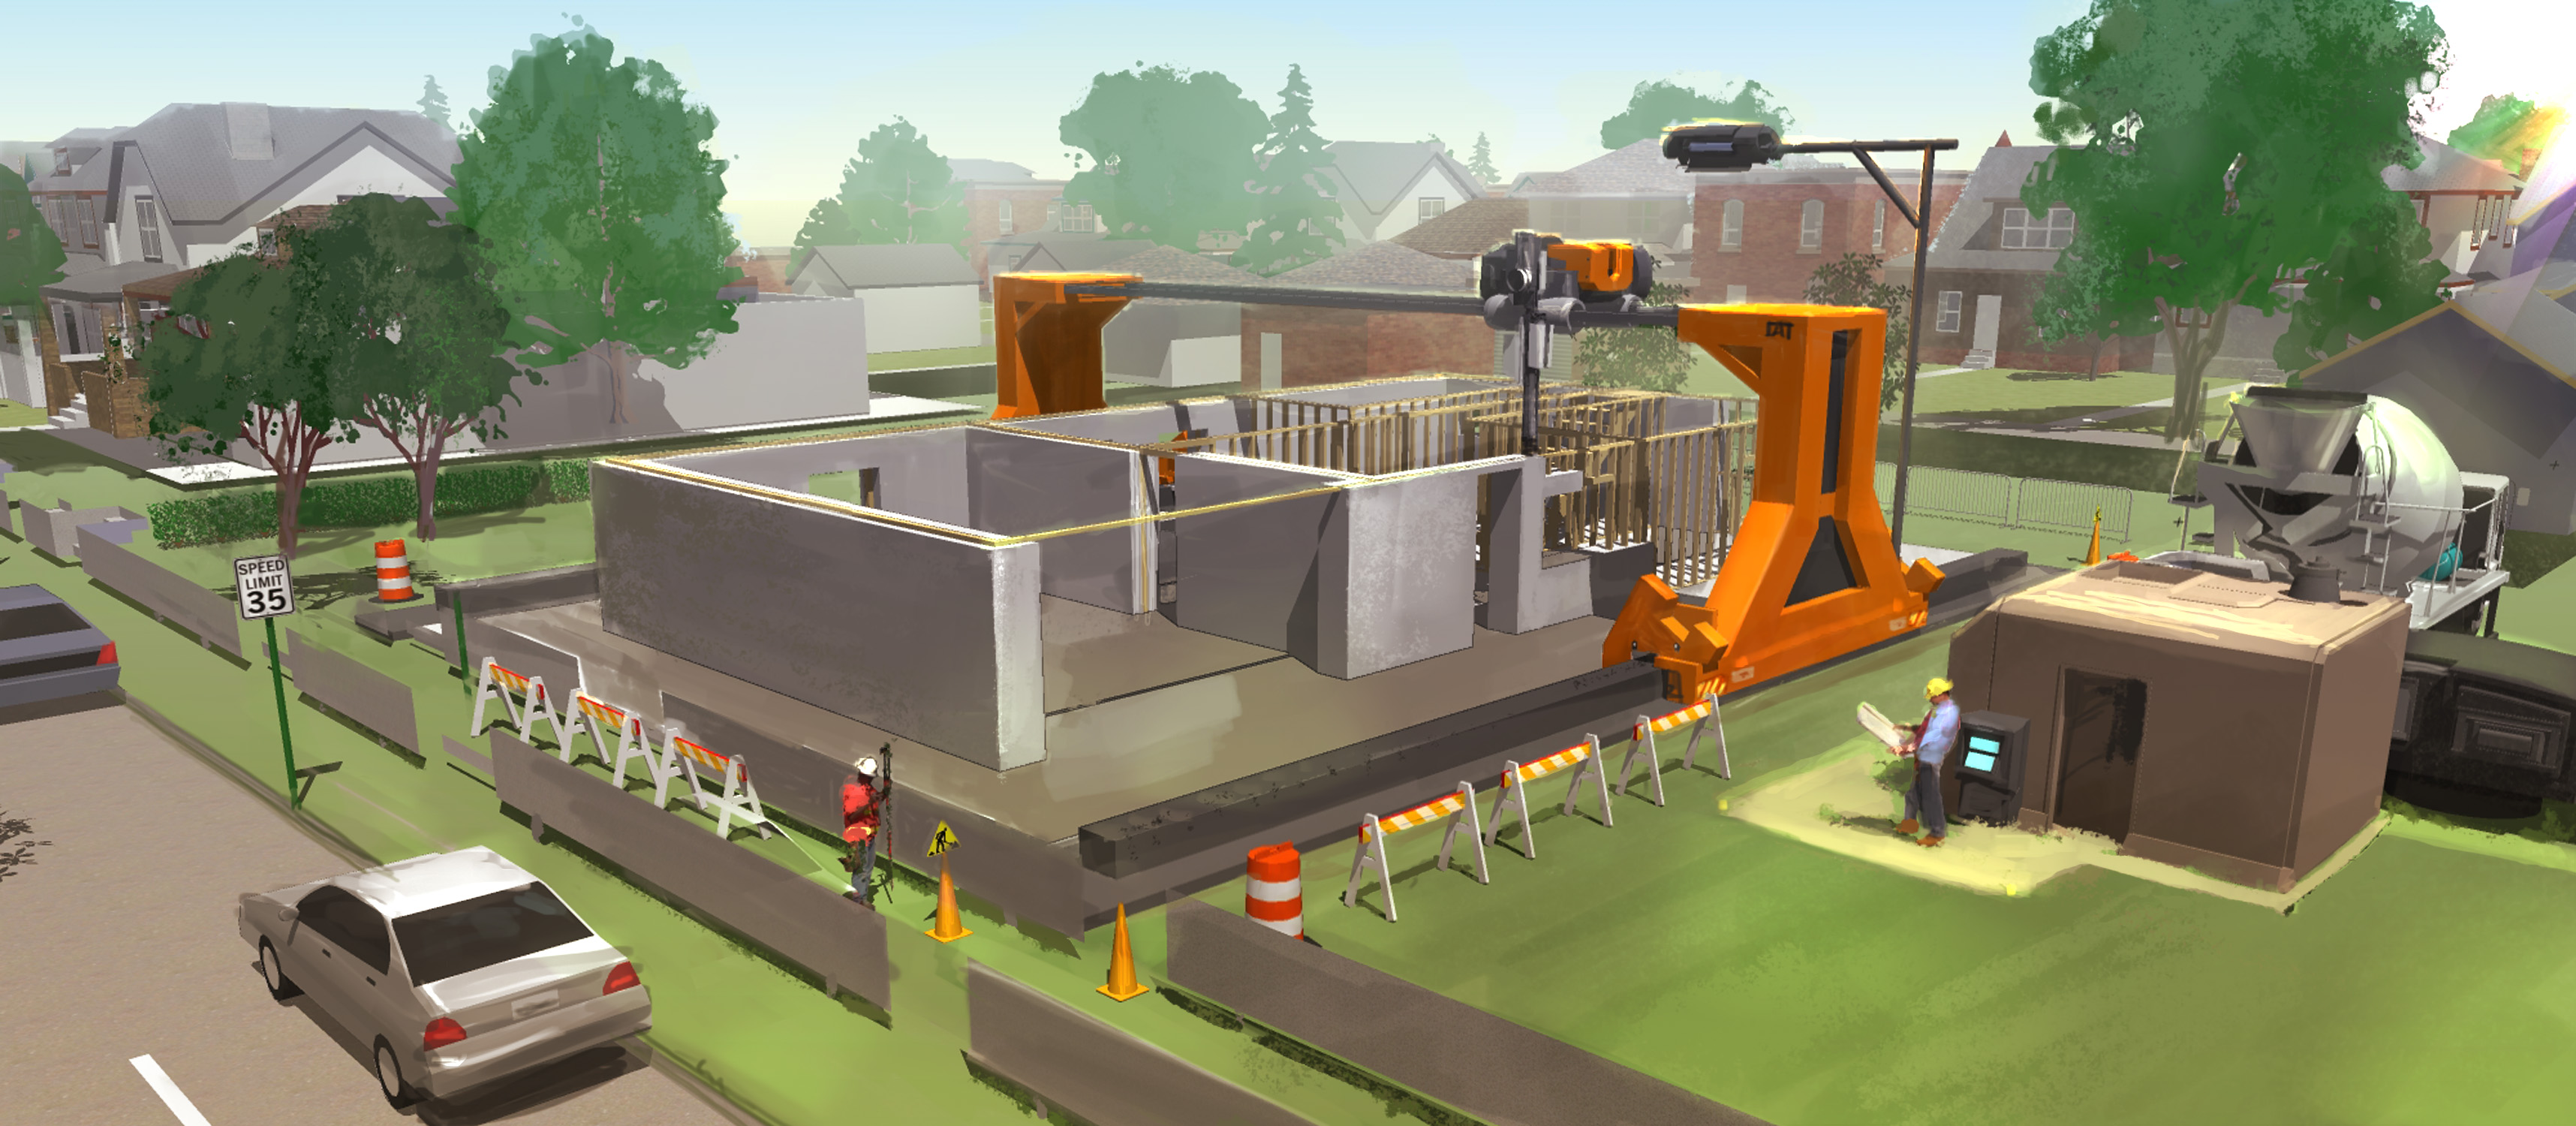 Cool Machines 3d Printing Machines Set To Revolutionise Construction Iseekplant